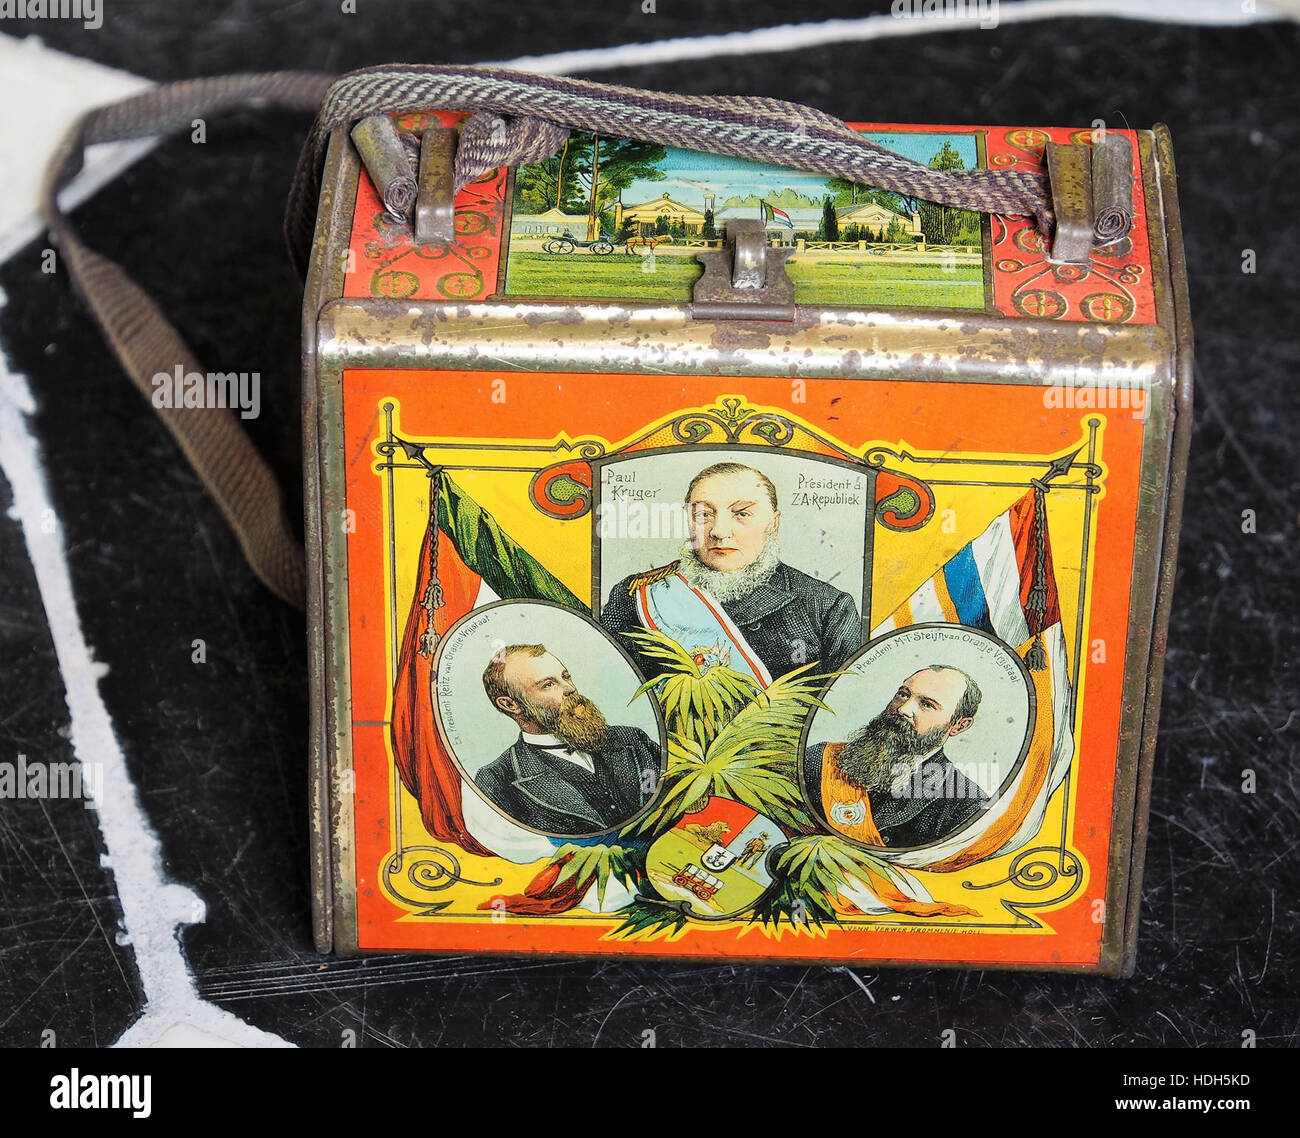 Paul Kruger Predident d'Z A Republiek tin, museum of Yvette Dardenne pic1 - Stock Image